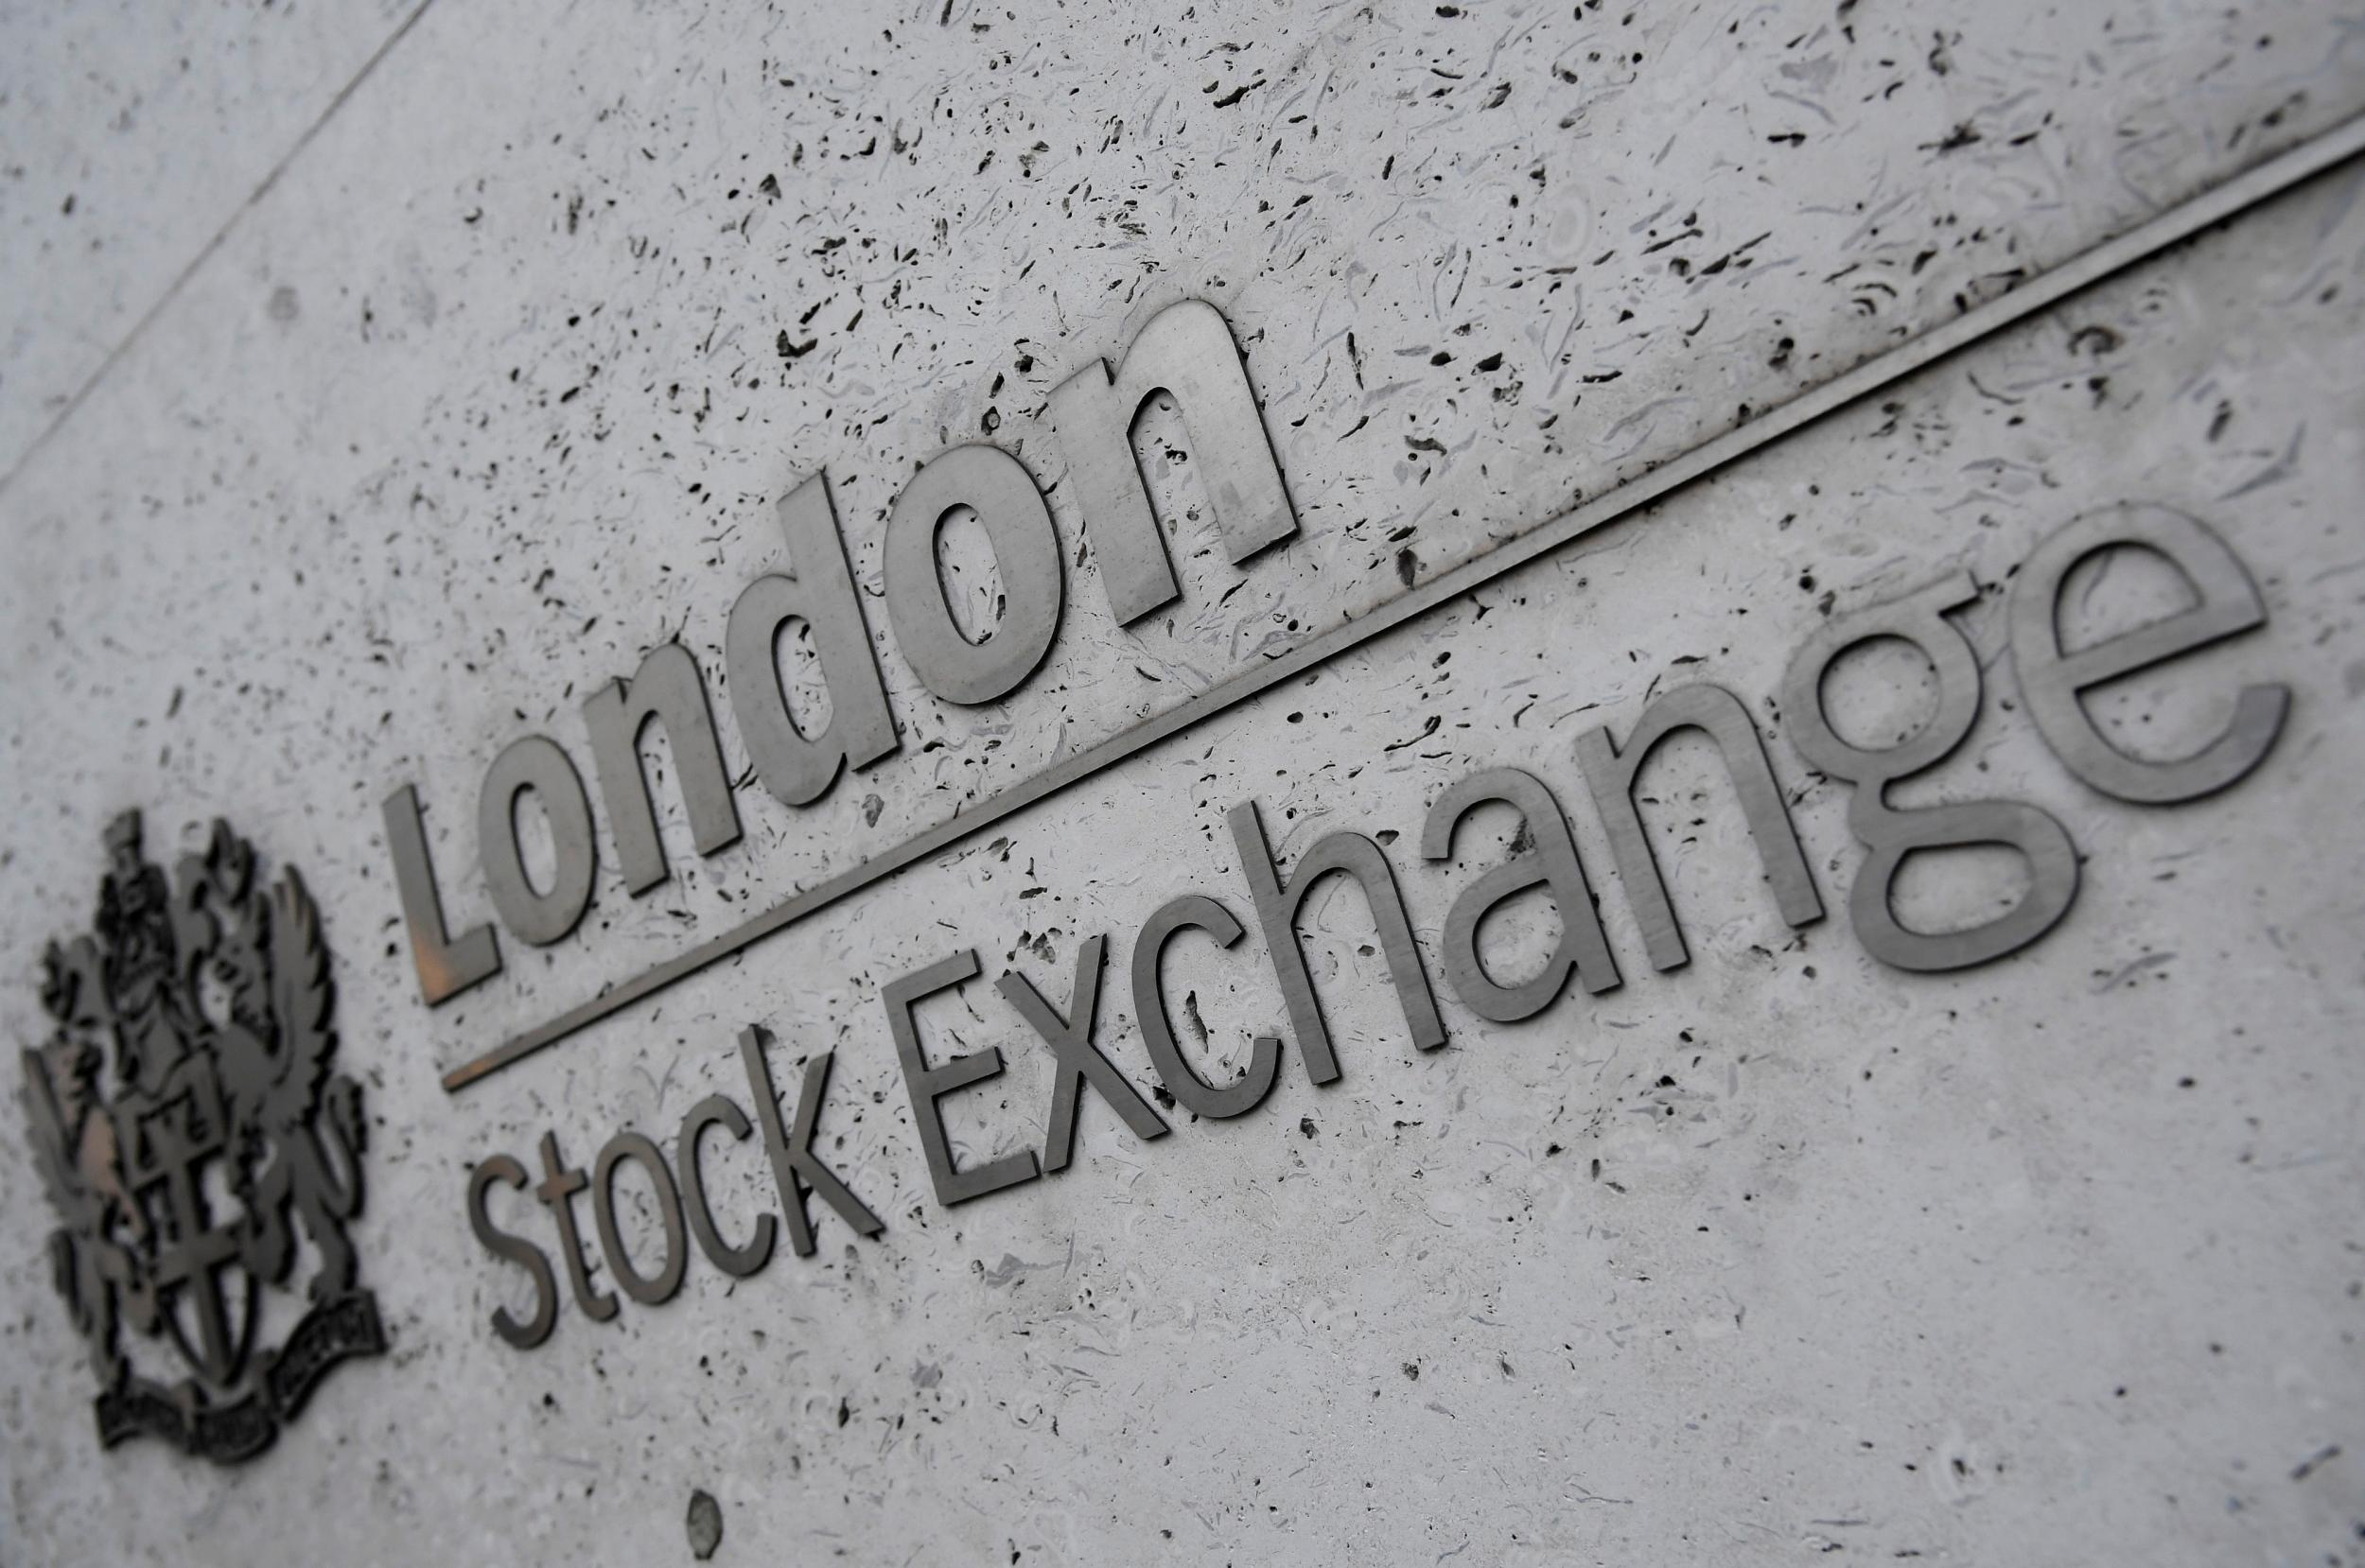 London Stock Exchange hit with longest outage in eight years